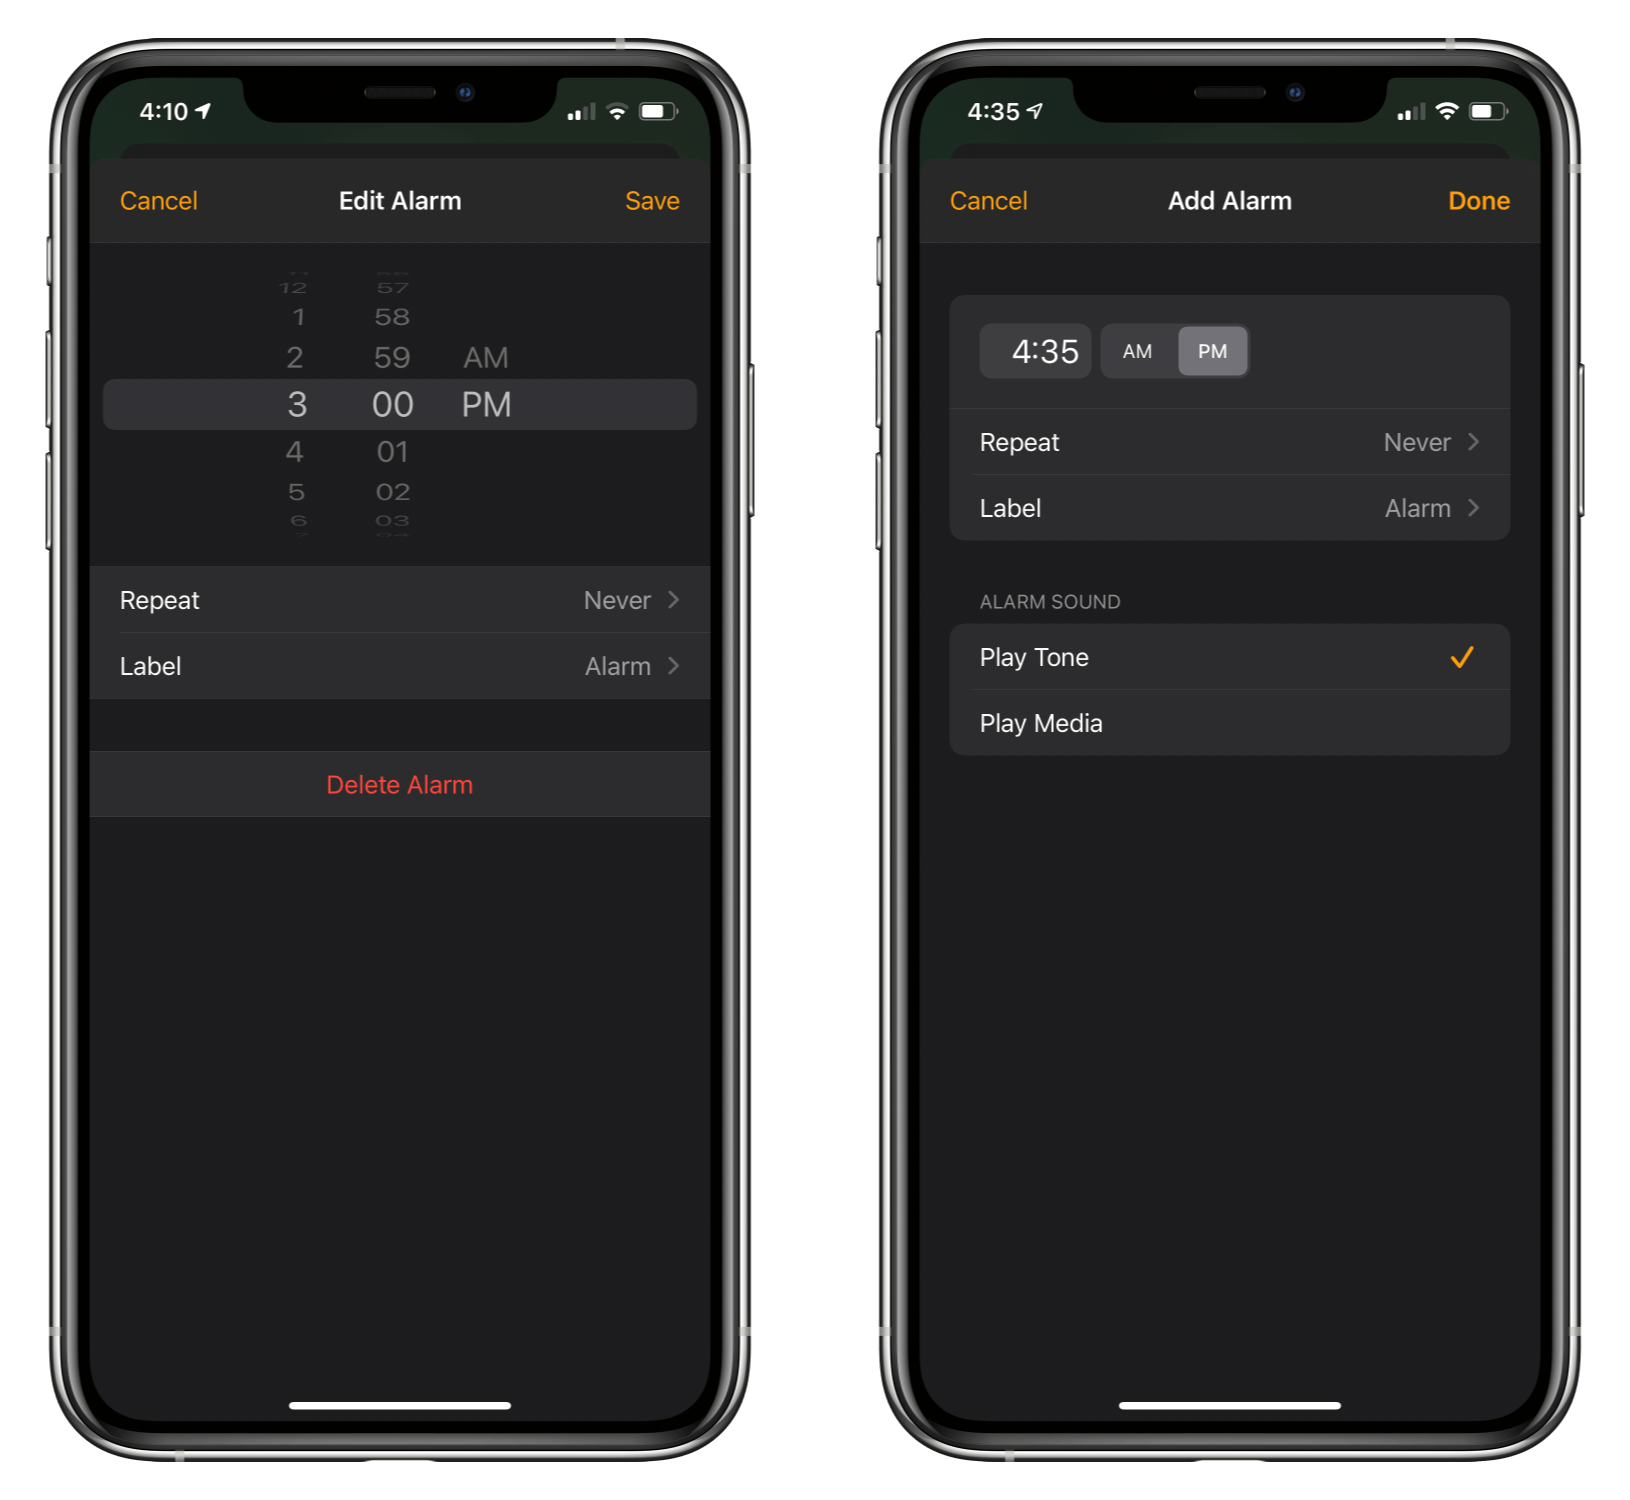 The HomePod alarms UI in iOS 14 (left) and iOS 14.1 (right).